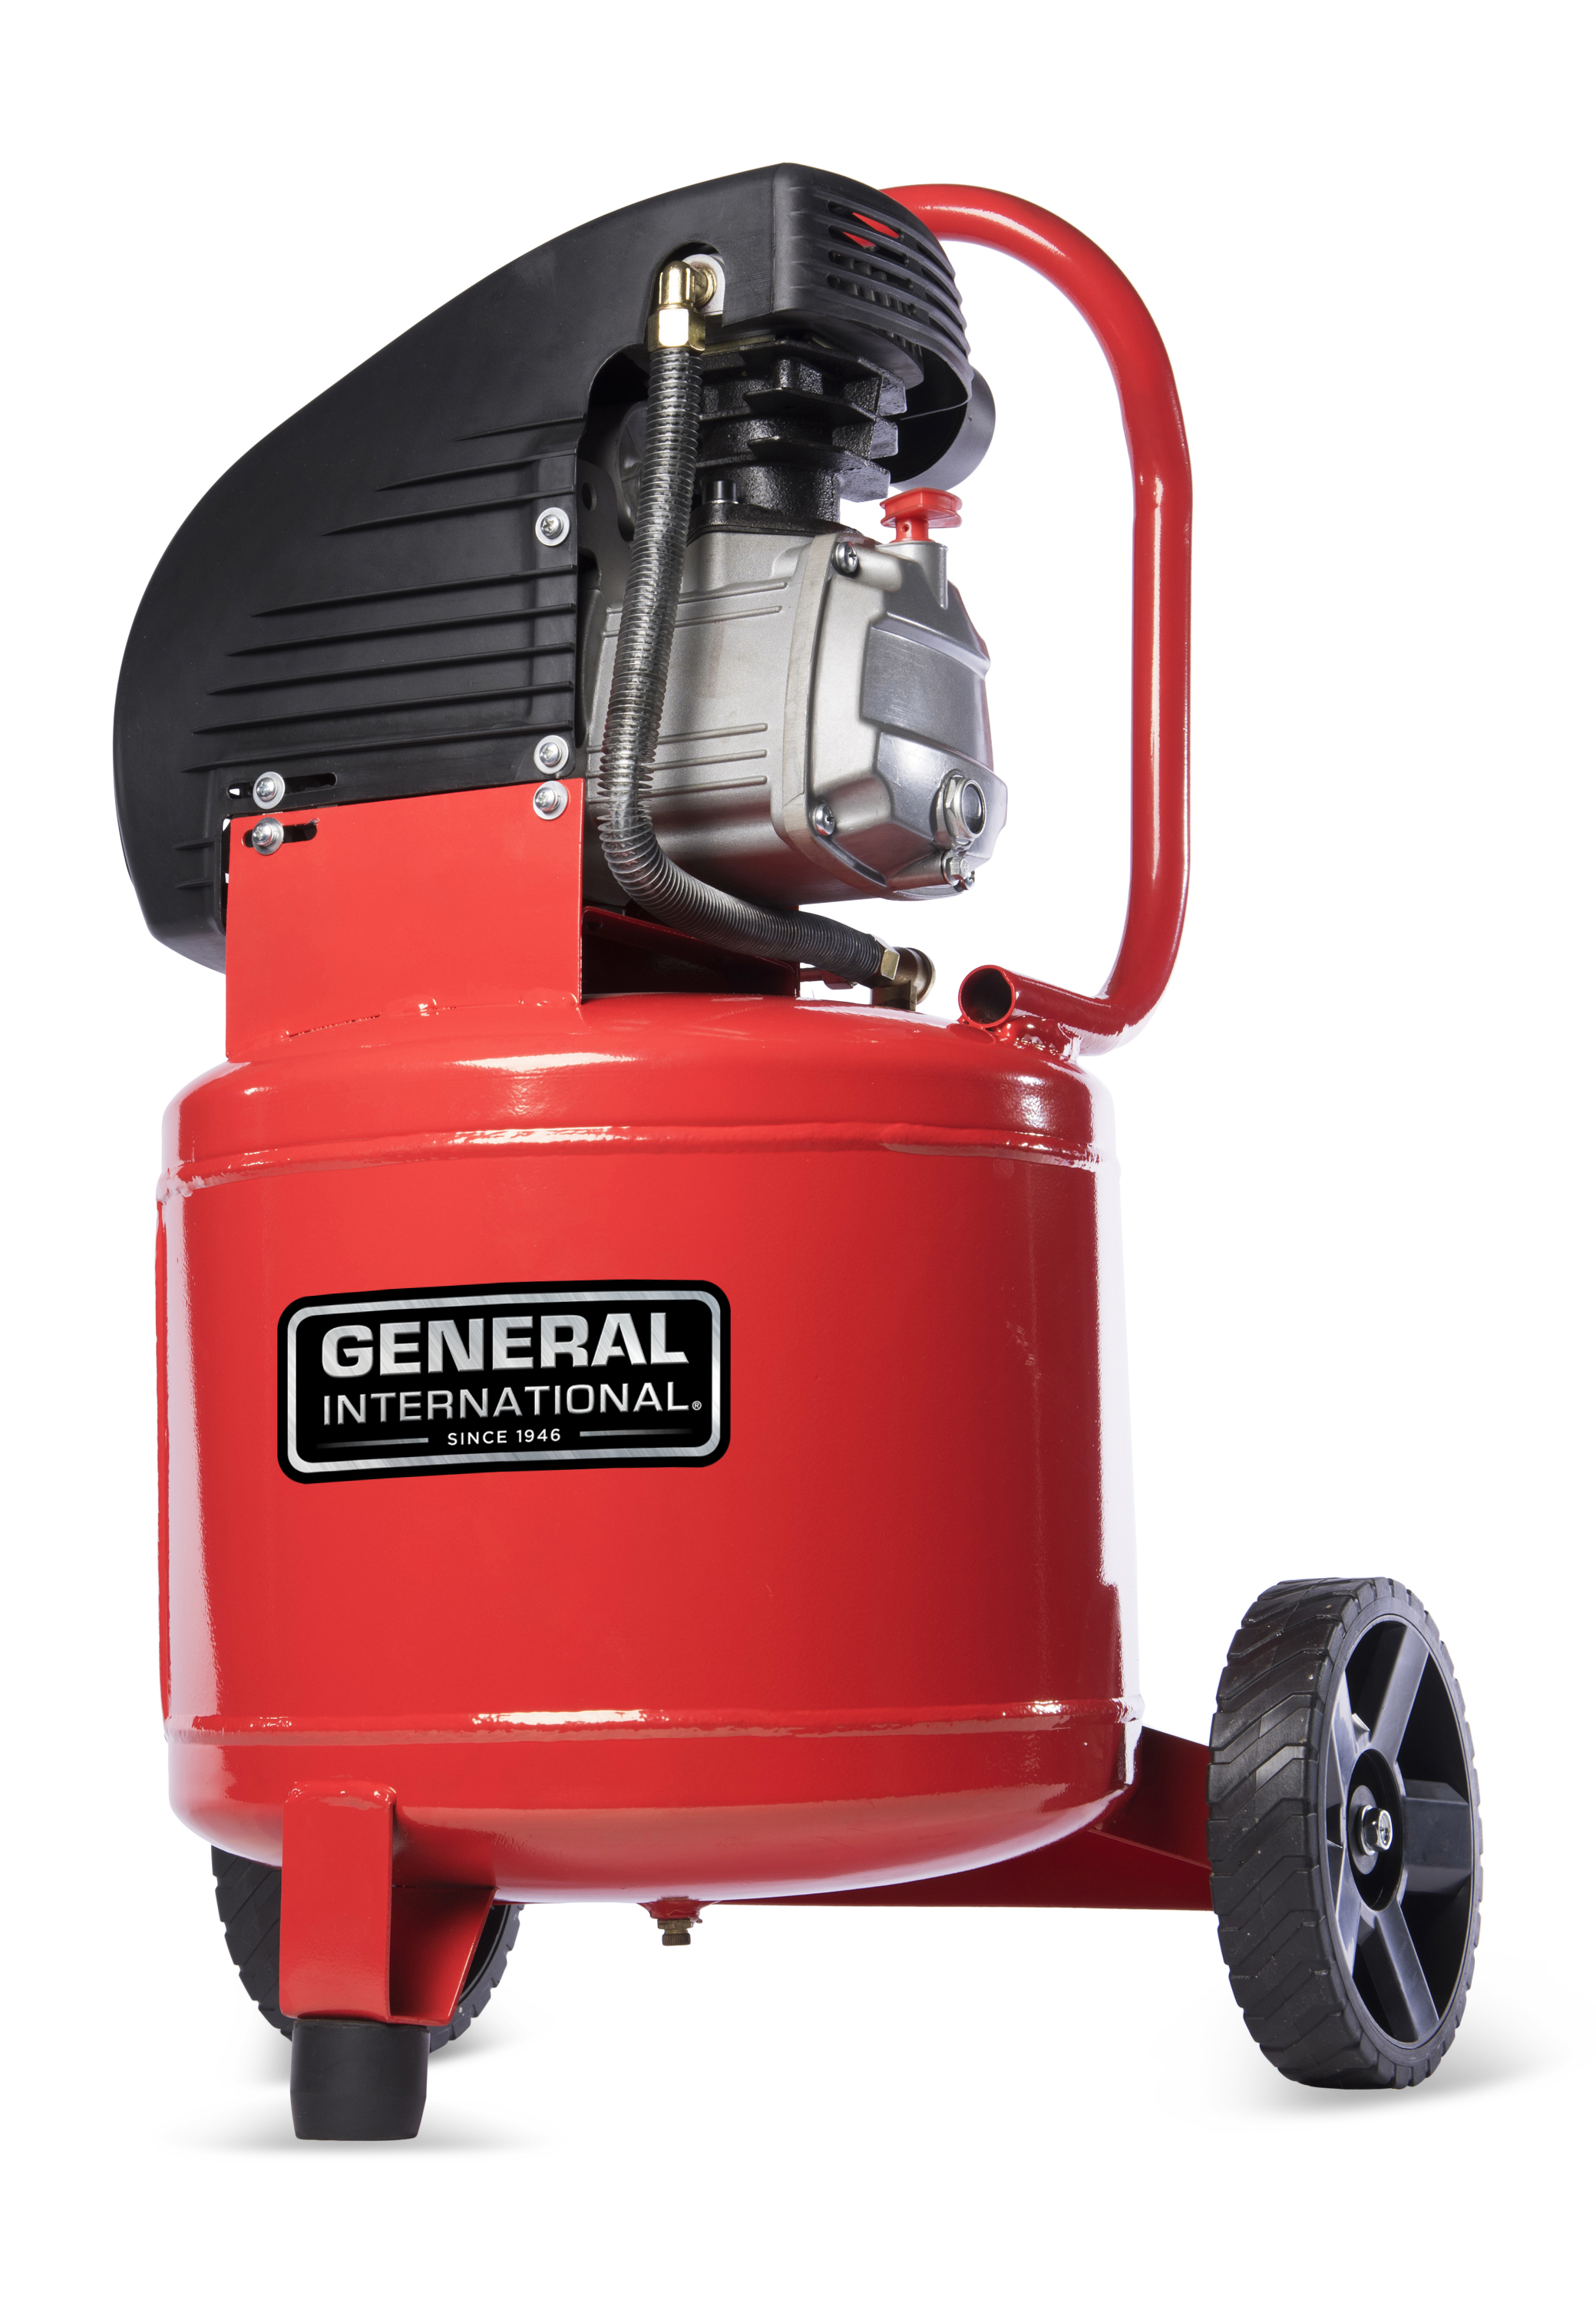 General International 2HP 11 gal vertical oil-lubricated electric air compressor with wheels- AC1104